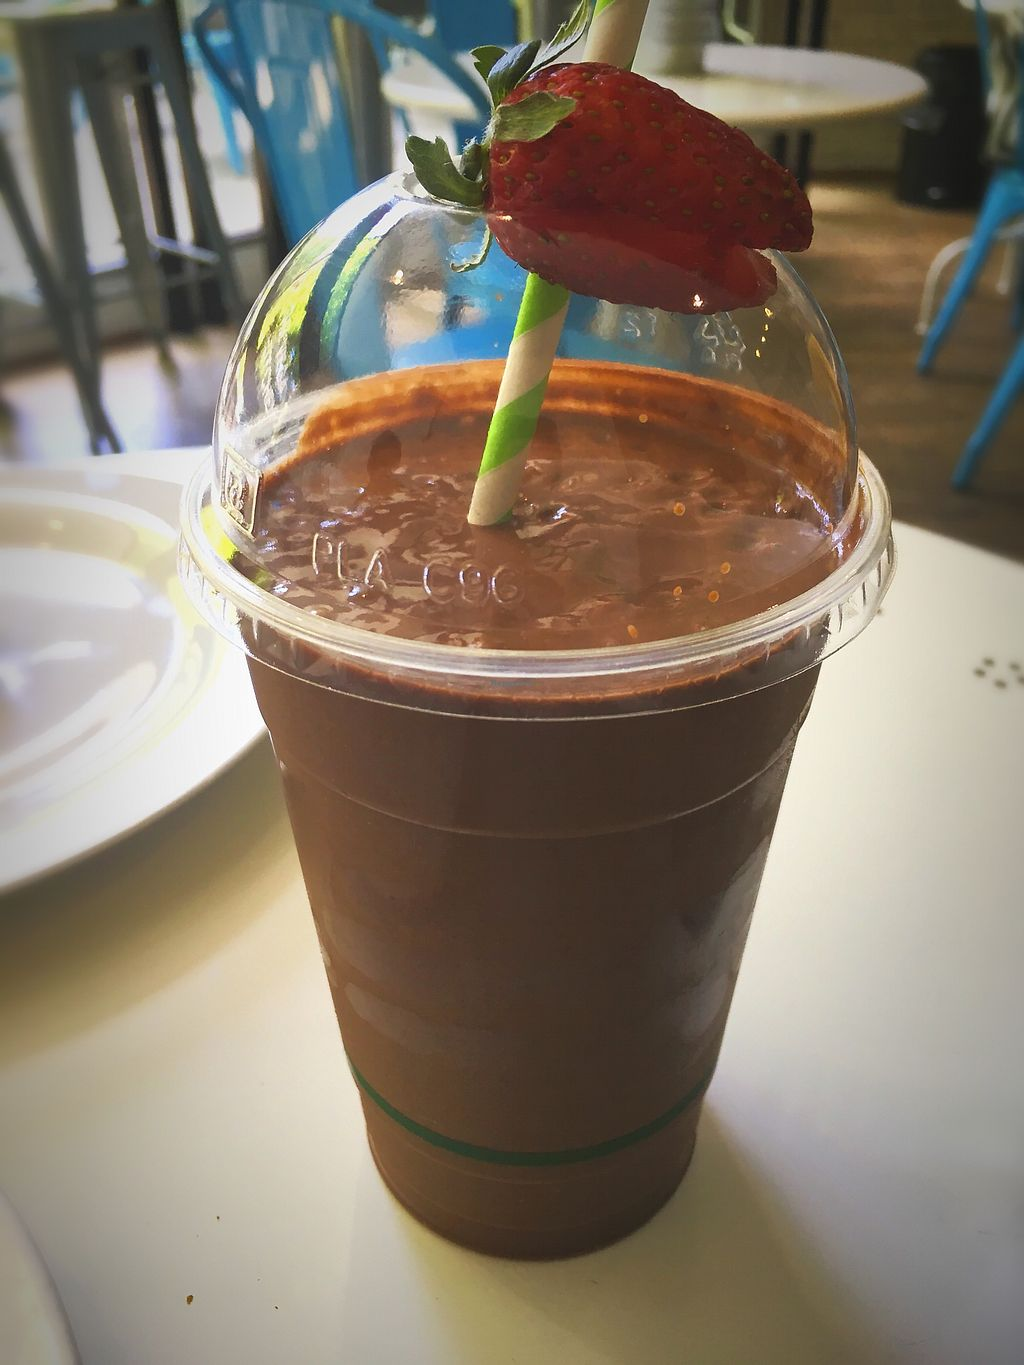 """Photo of OM Vegan Kitchen  by <a href=""""/members/profile/Mslanei"""">Mslanei</a> <br/>Sacred chocolate milkshake  <br/> November 8, 2017  - <a href='/contact/abuse/image/80628/323171'>Report</a>"""